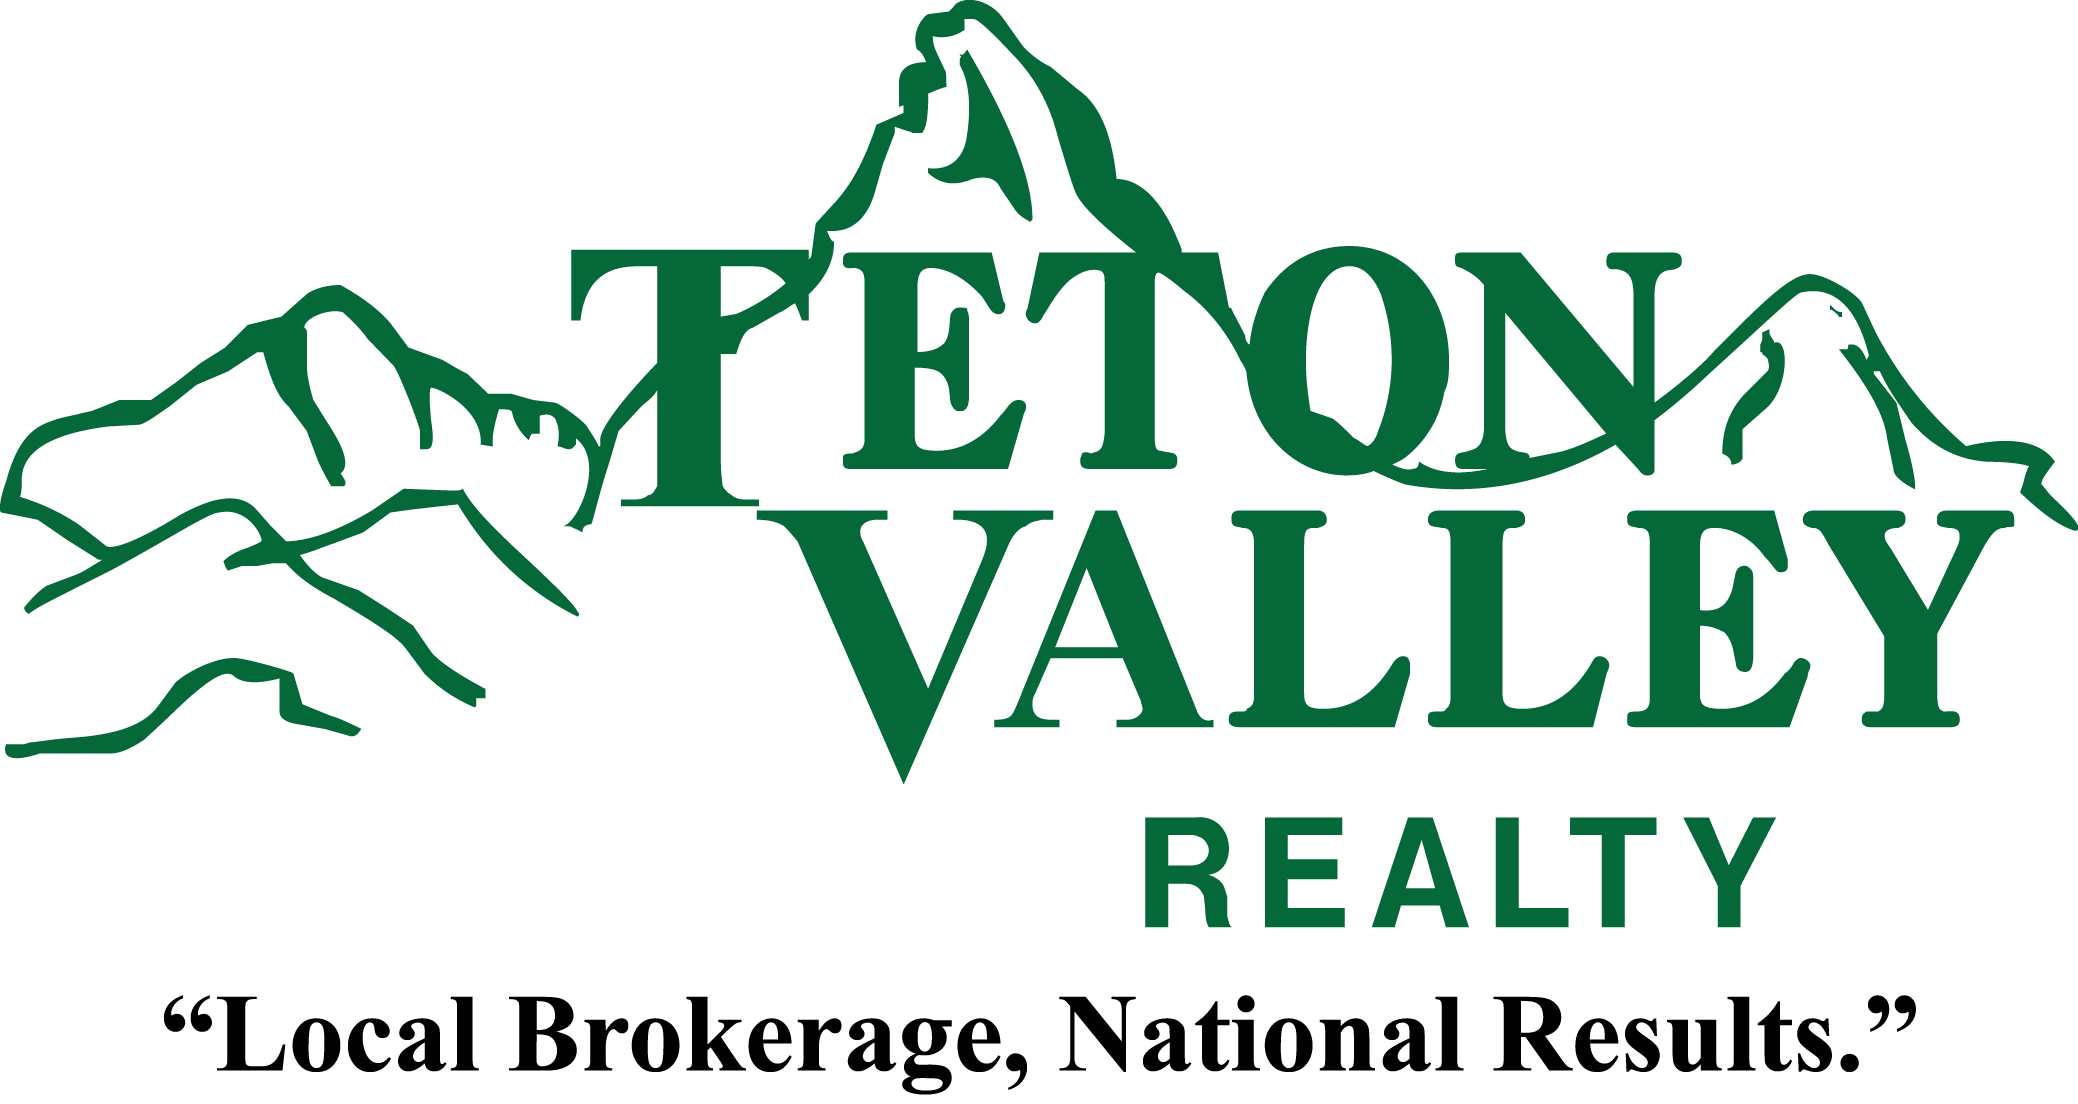 Teton Valley Realty